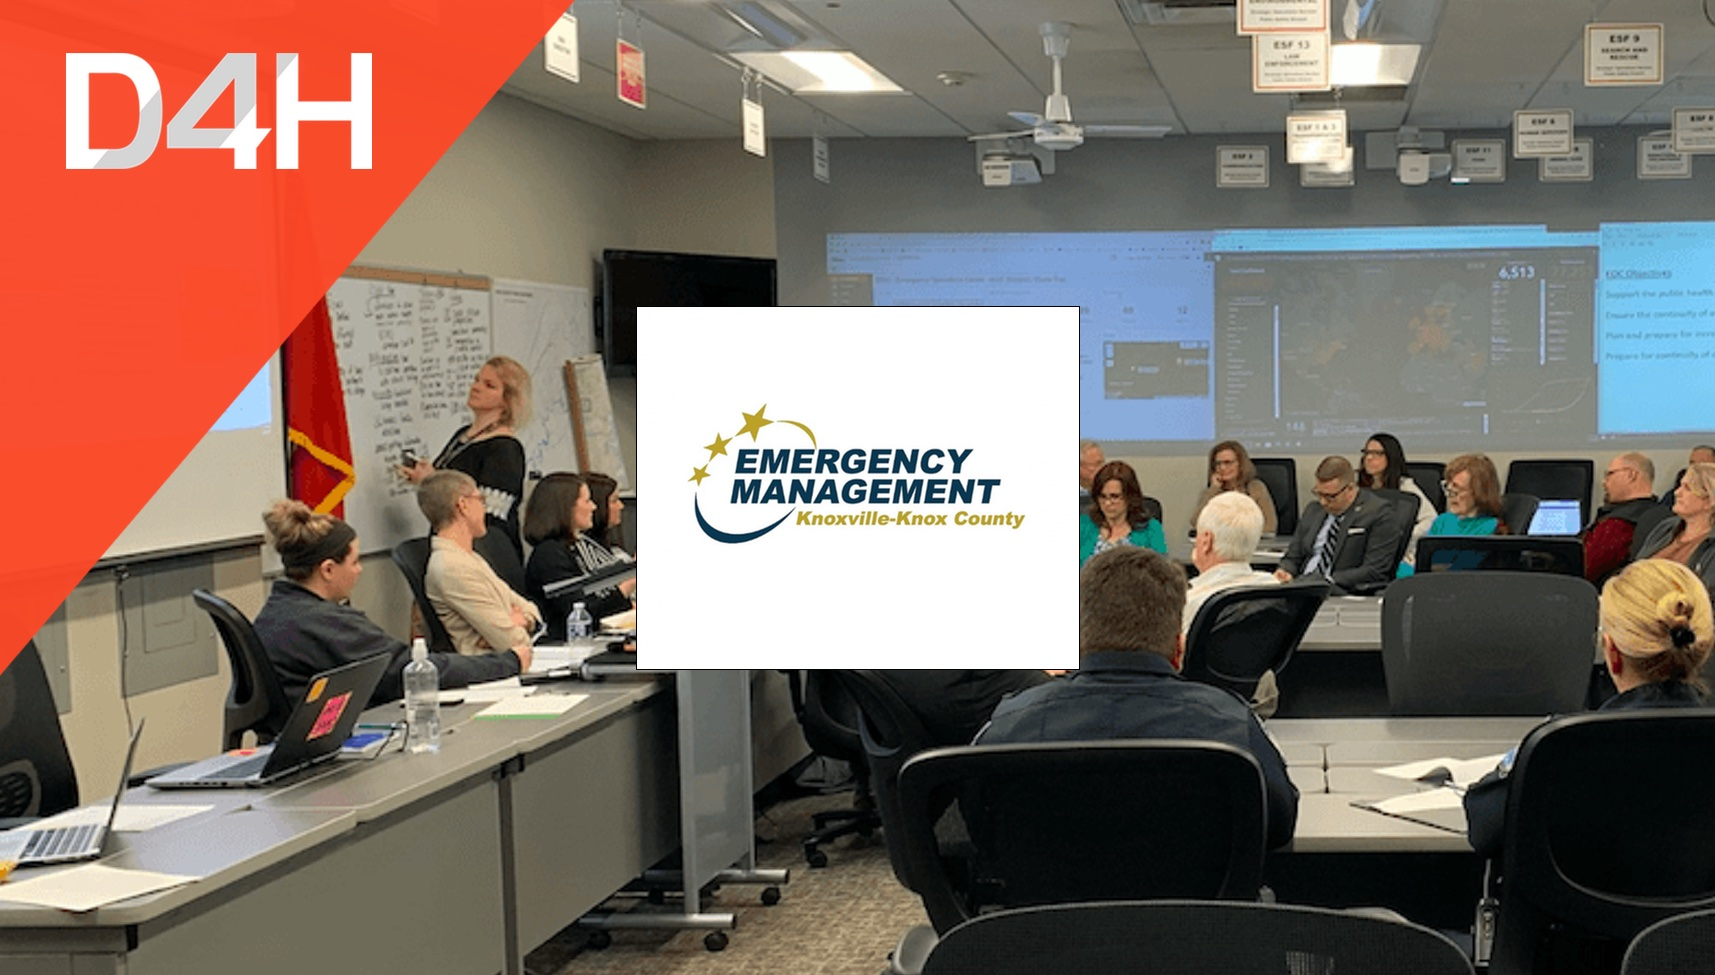 How Knoxville-Knox County EMA is Operating Their EOC Remotely During COVID-19